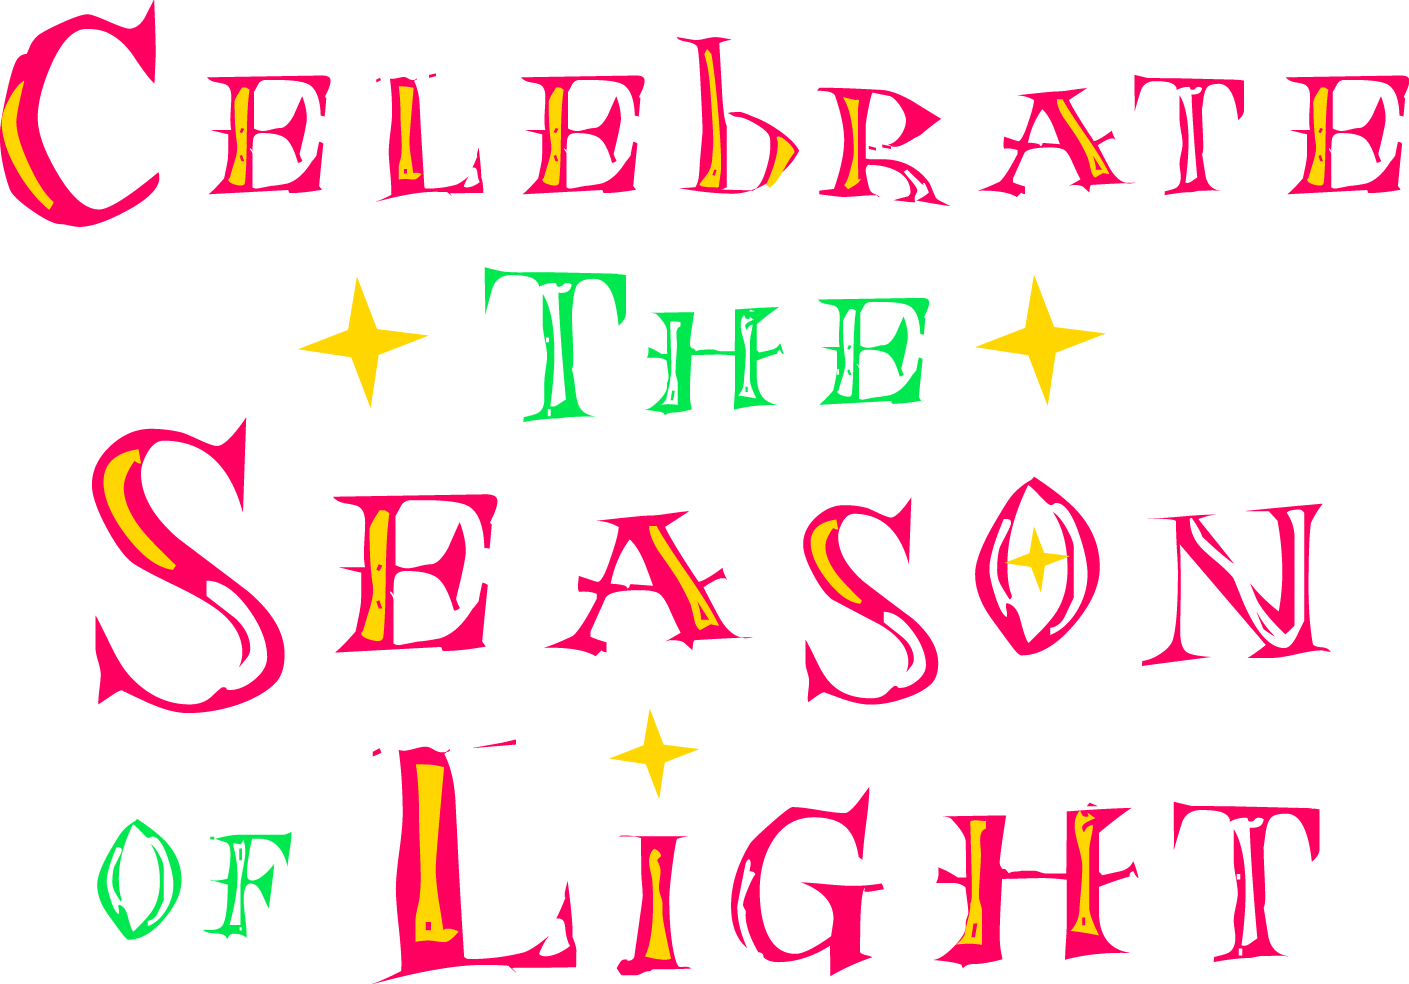 ~~Celebrate the Season of Light ~~